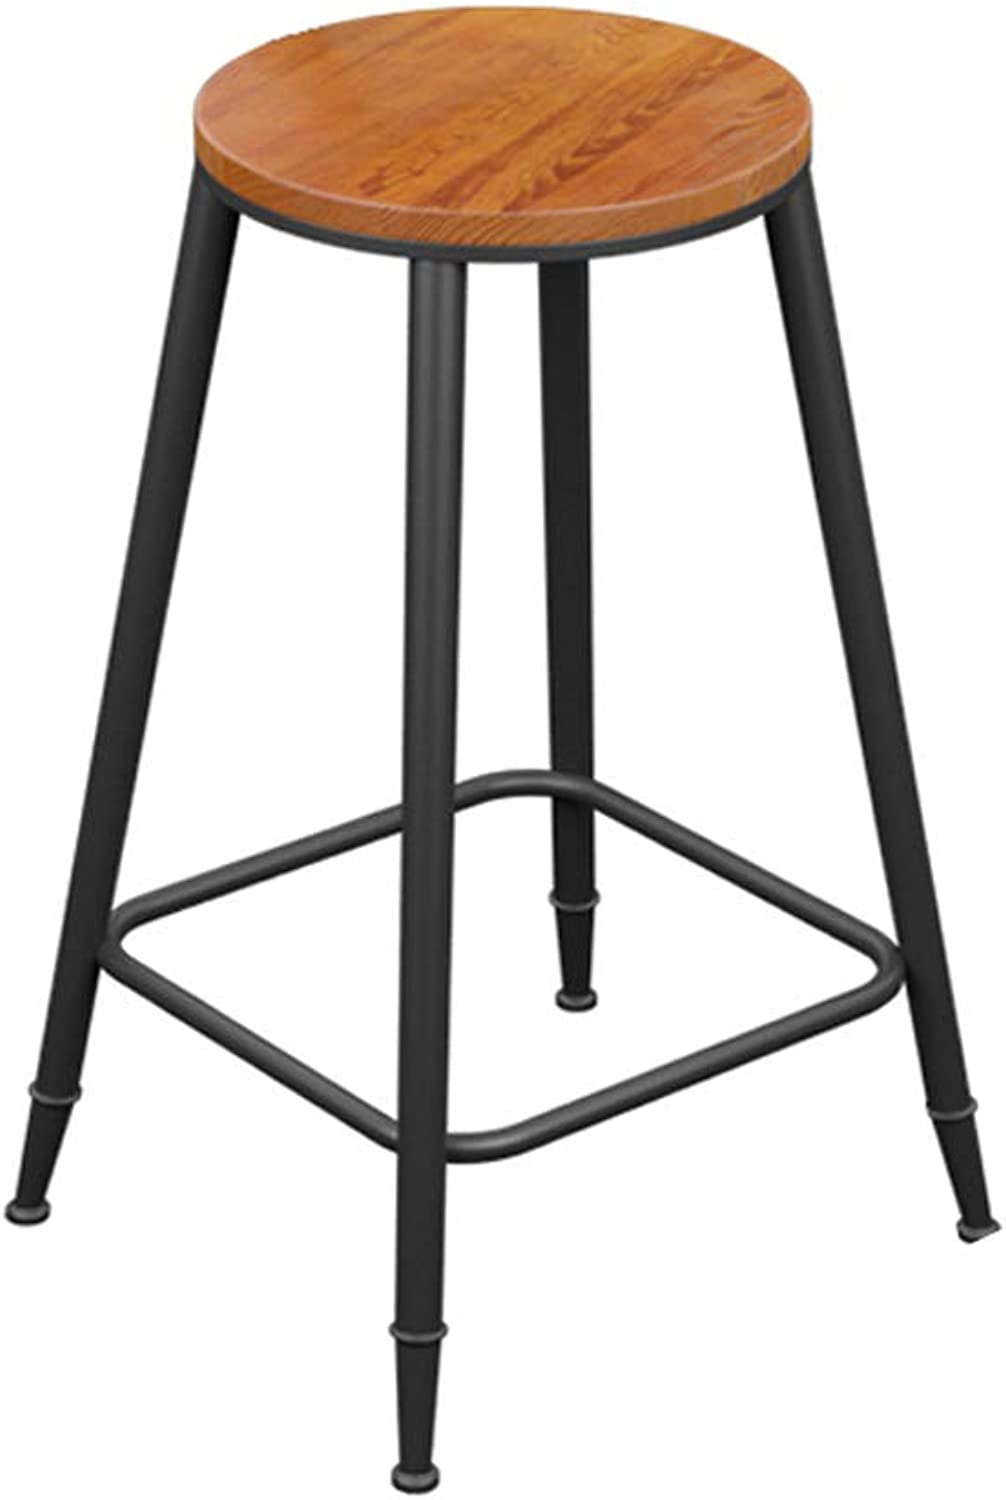 Yan Fei Iron Wood Bar Stool Bar Stool High Bar Chair High Stool High Chair Bar Stool Bar Chair Front Chair Comfortable Stools (Size   Sitting height73)